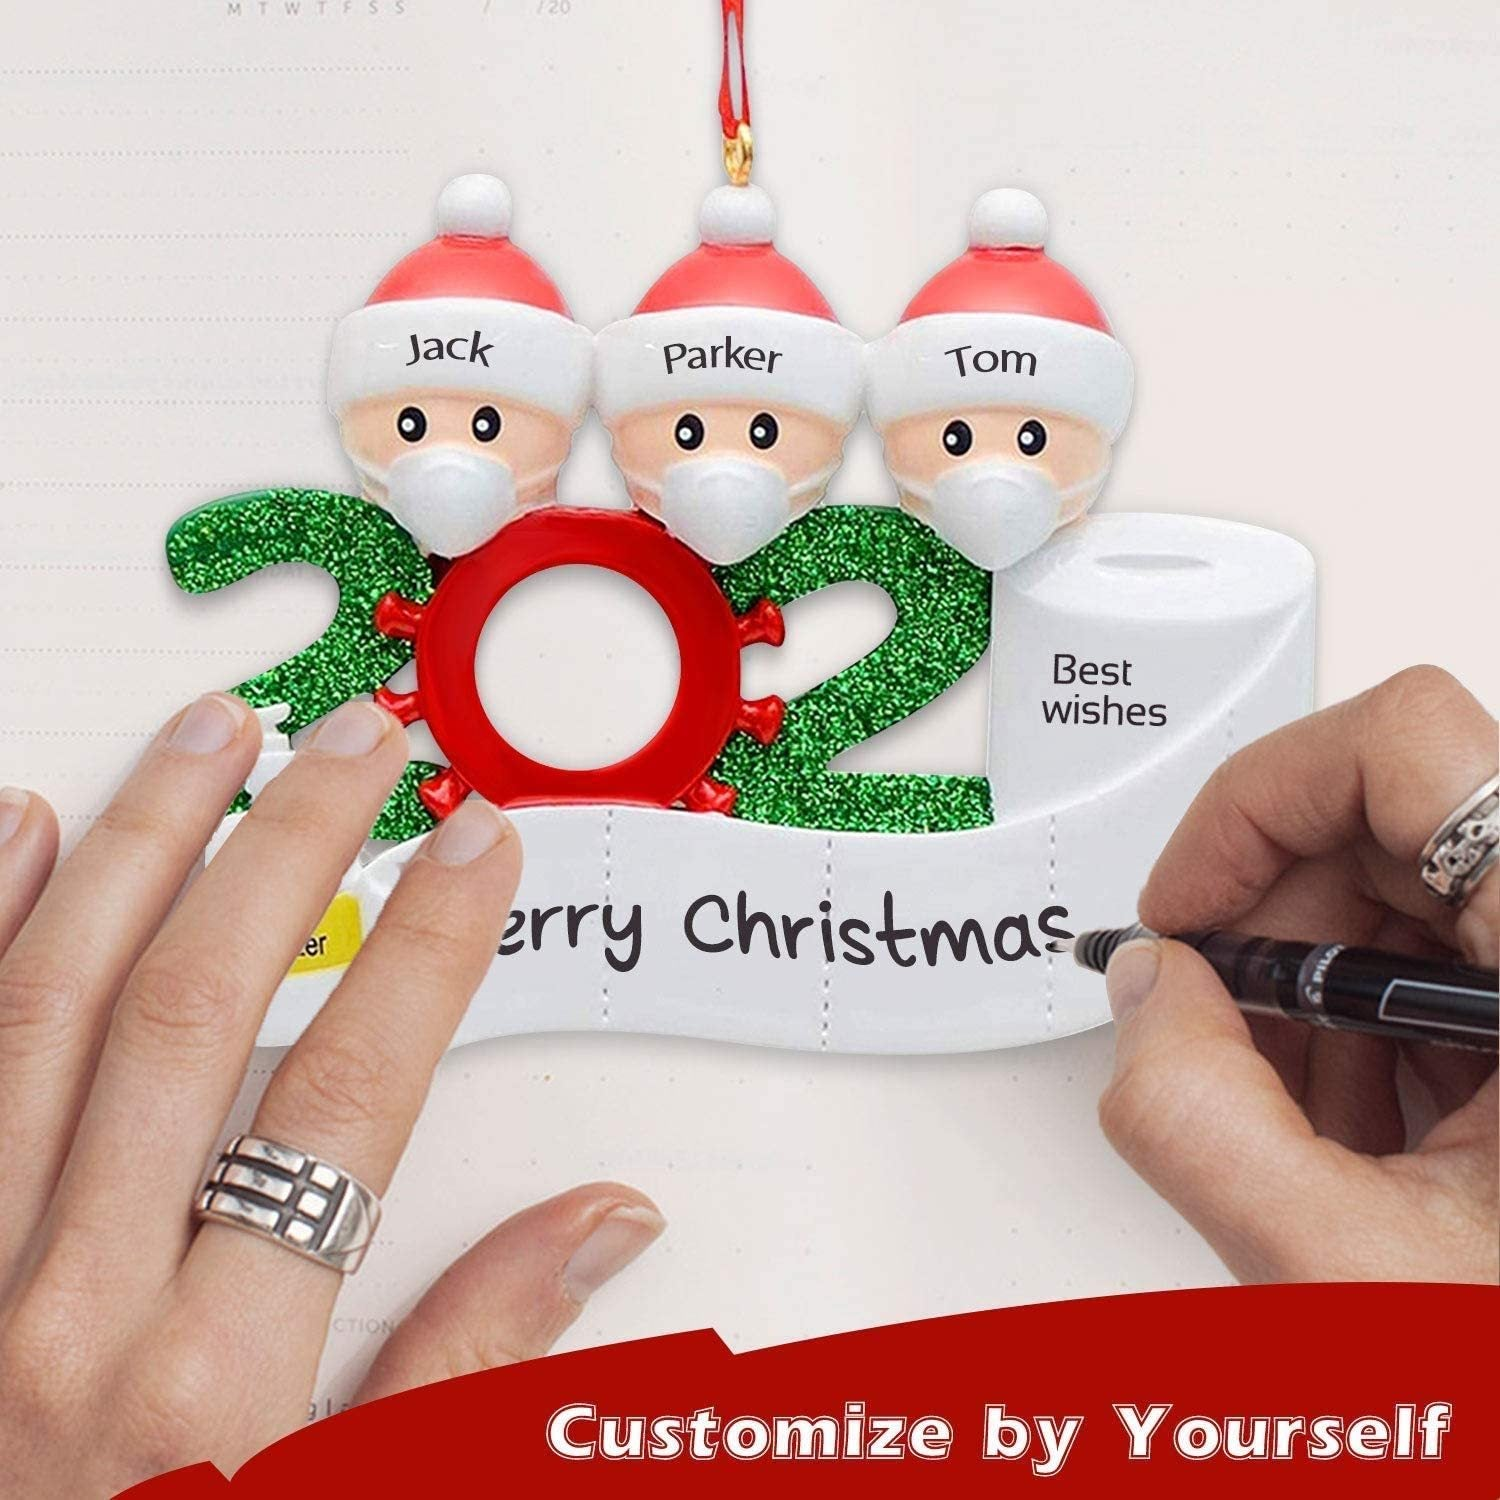 2020 Personalized Name Christmas ornaments (Family of 3) - Xmas Shop